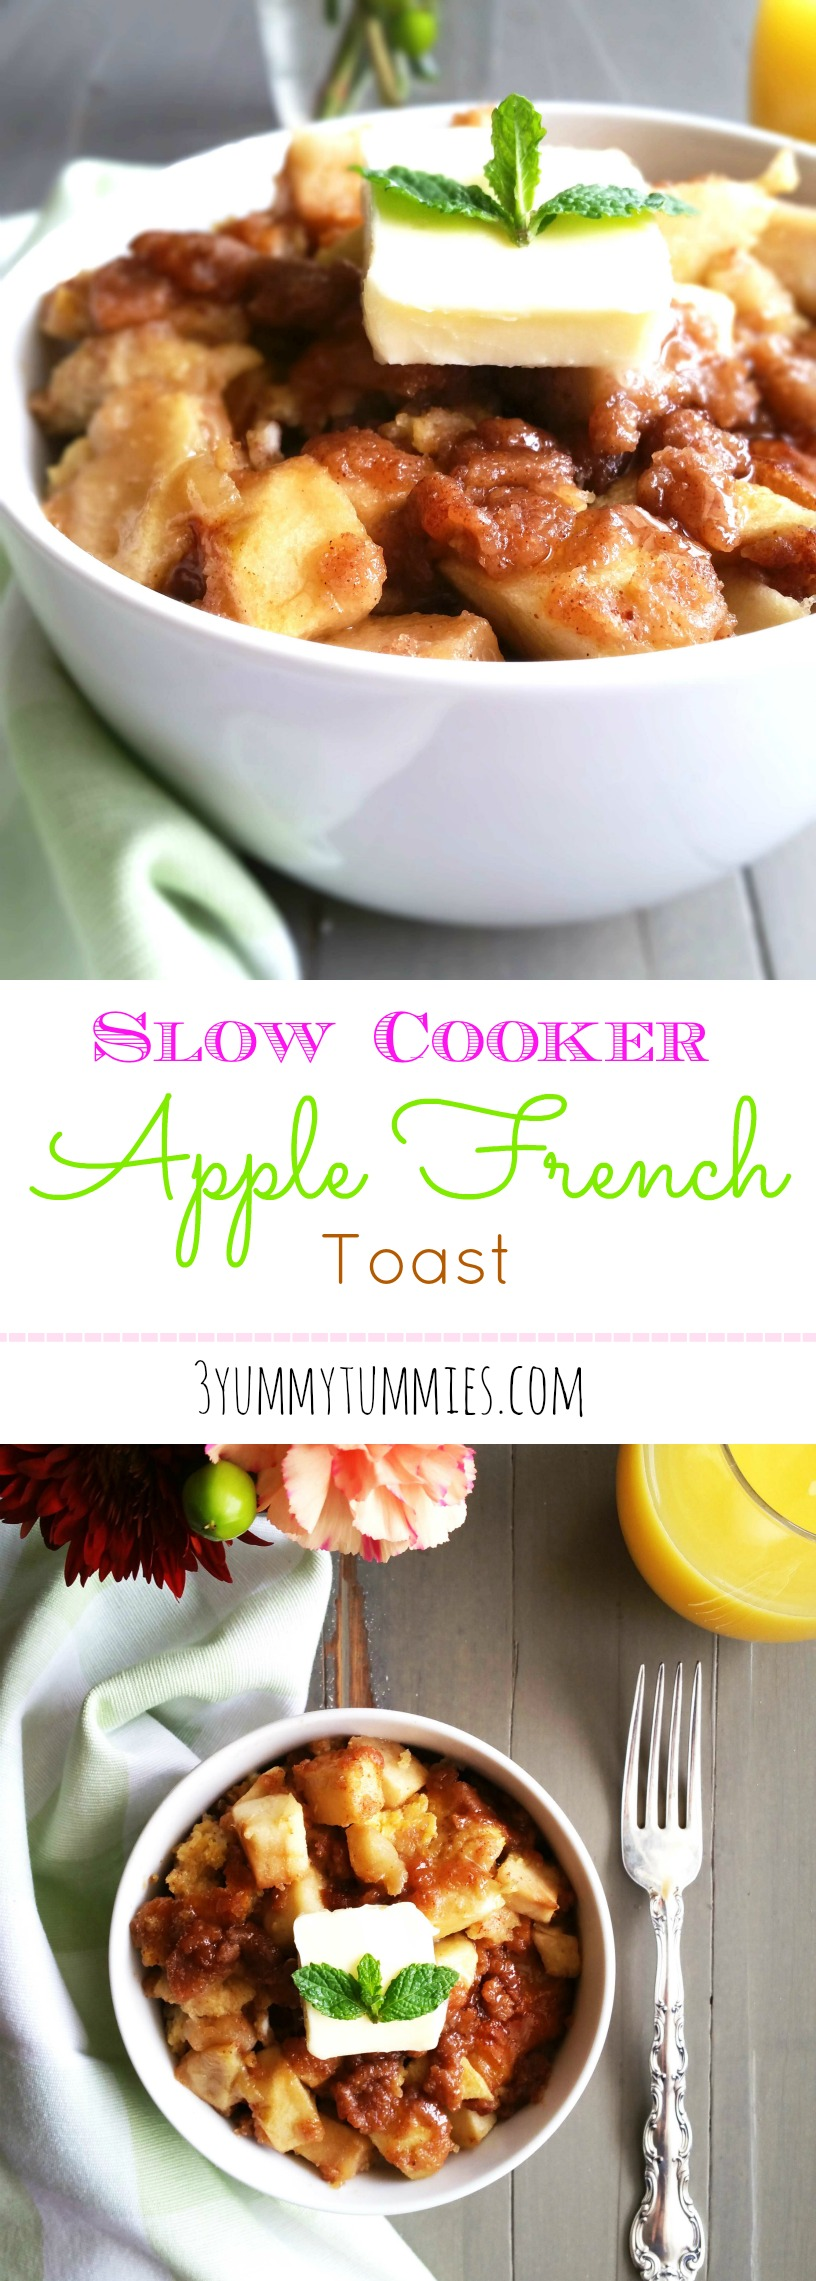 Slow Cooker Apple French Toast